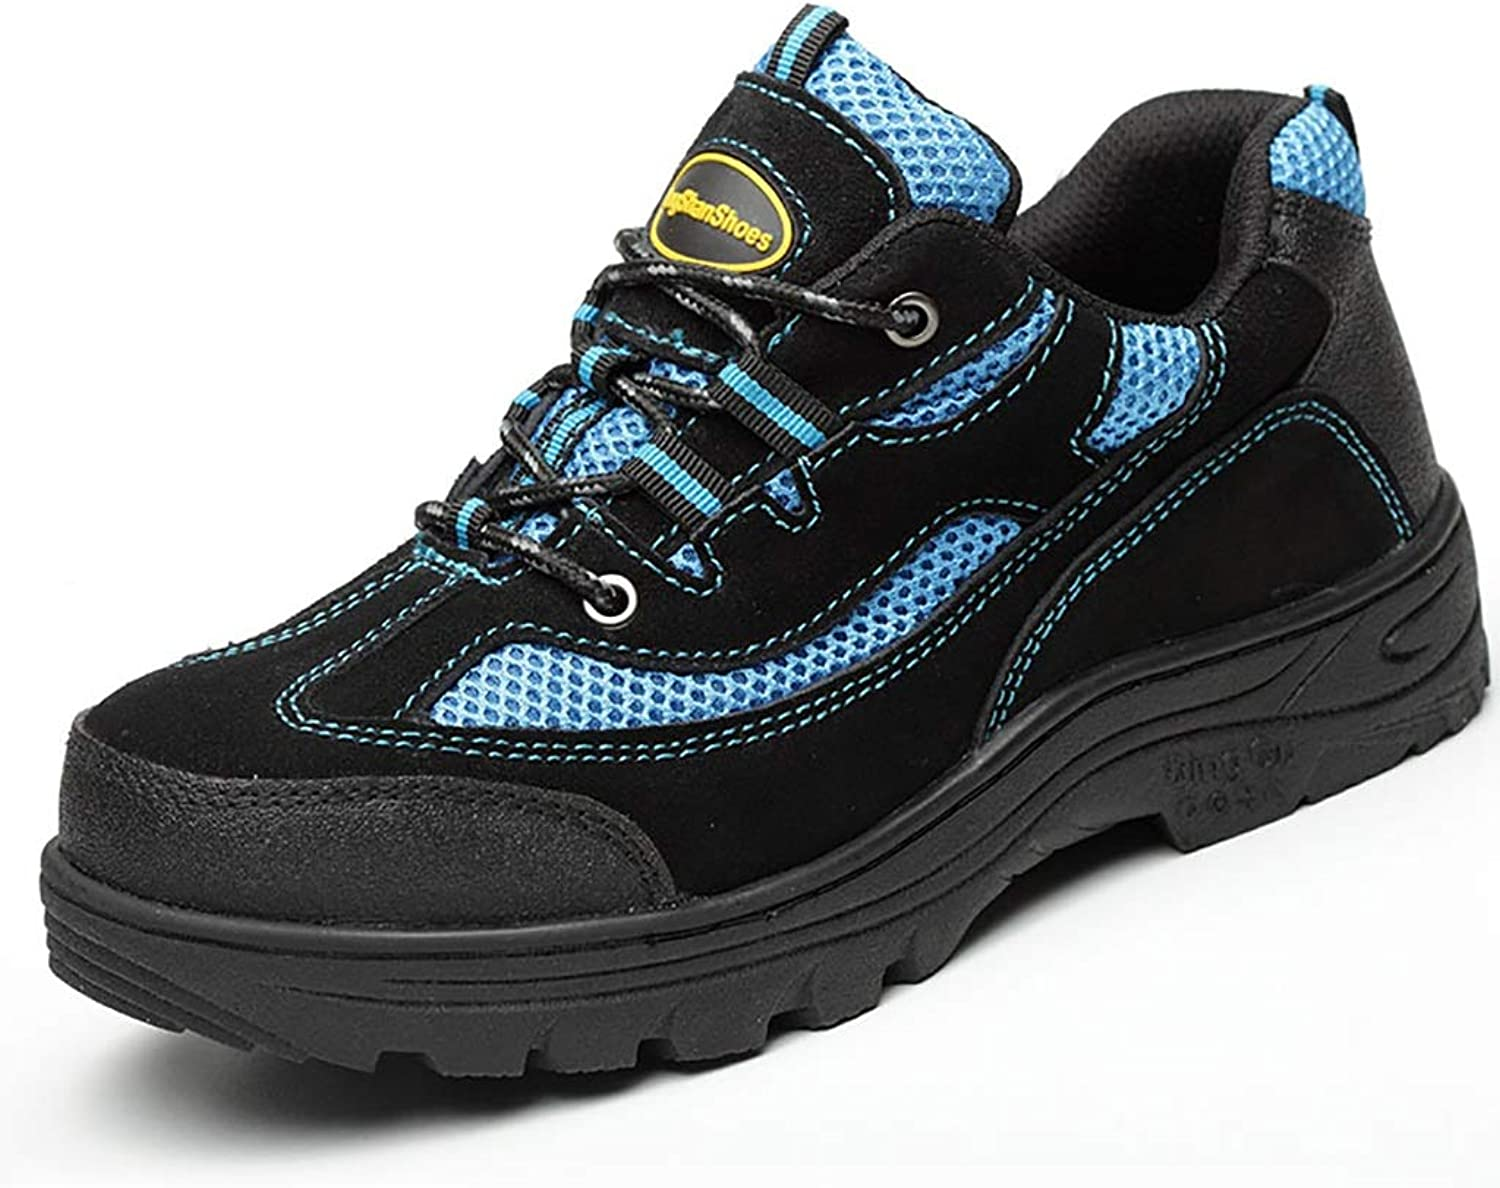 ZYFXZ Safety shoes Safety shoes men's breathable safety shoes deodorant steel toe anti-puncture work shoes work boots (color   bluee, Size   43)